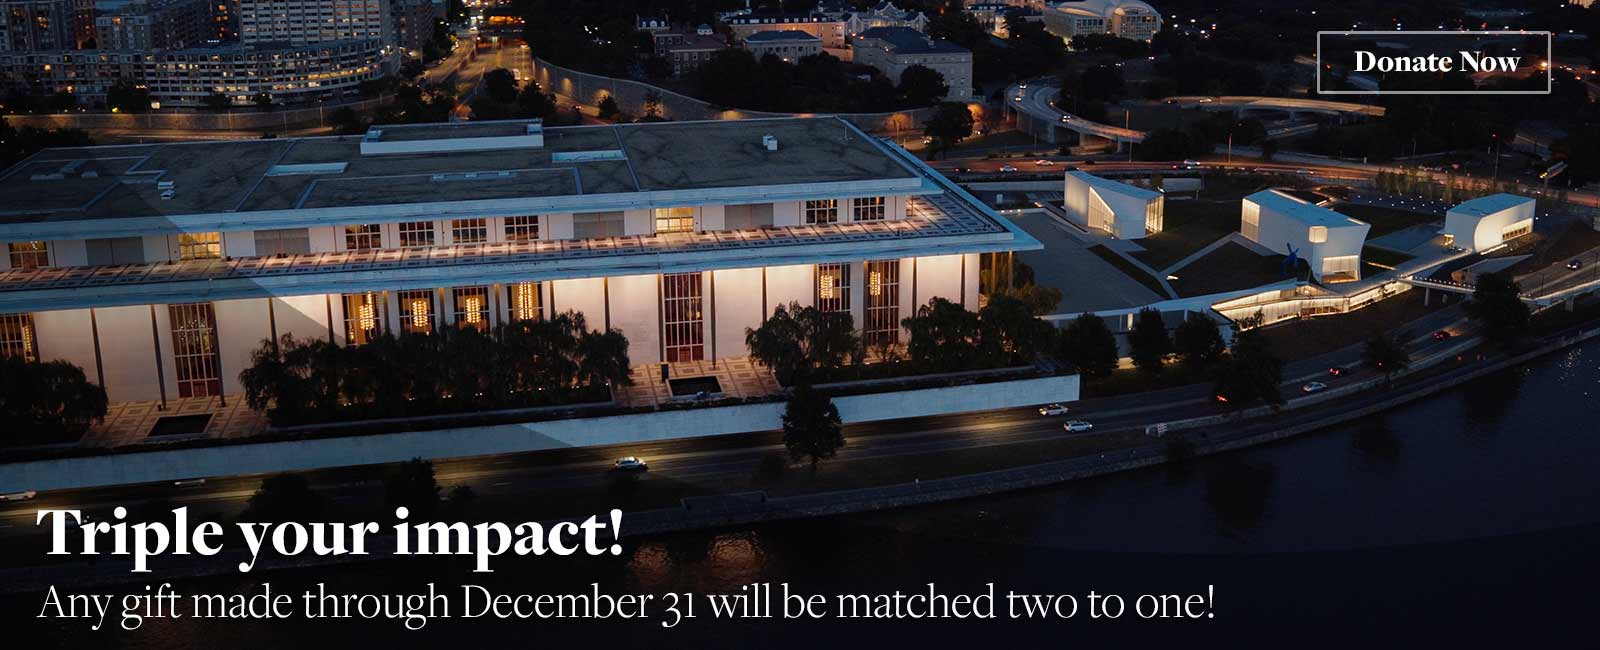 Triple your impact, give by December 31